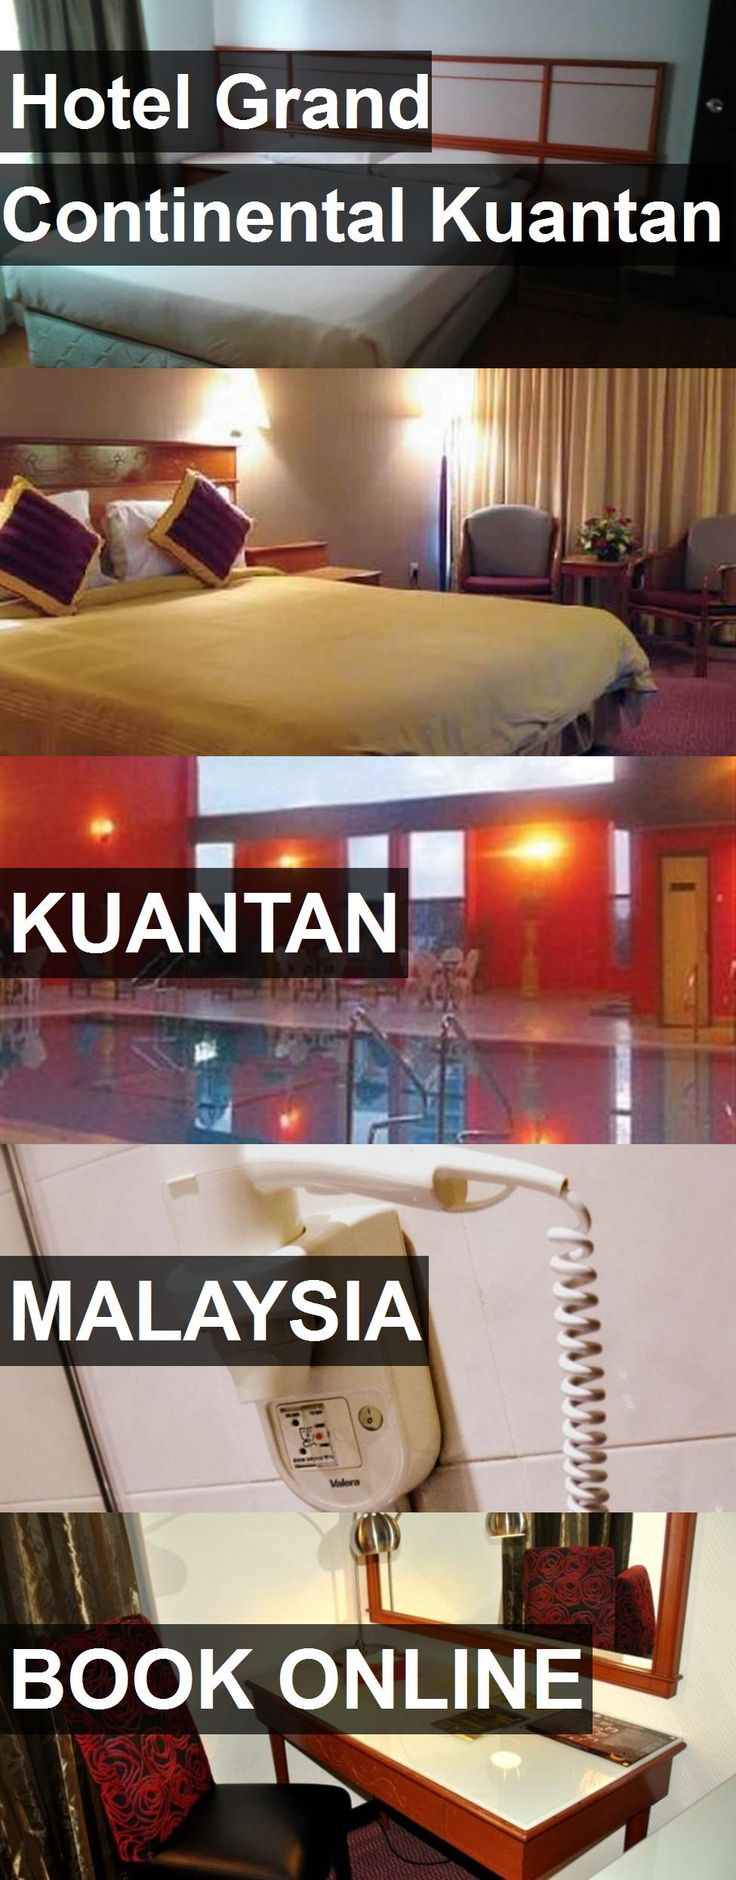 Hotel Grand Continental Kuantan in Kuantan, Malaysia. For more information, photos, reviews and best prices please follow the link. #Malaysia #Kuantan #travel #vacation #hotel